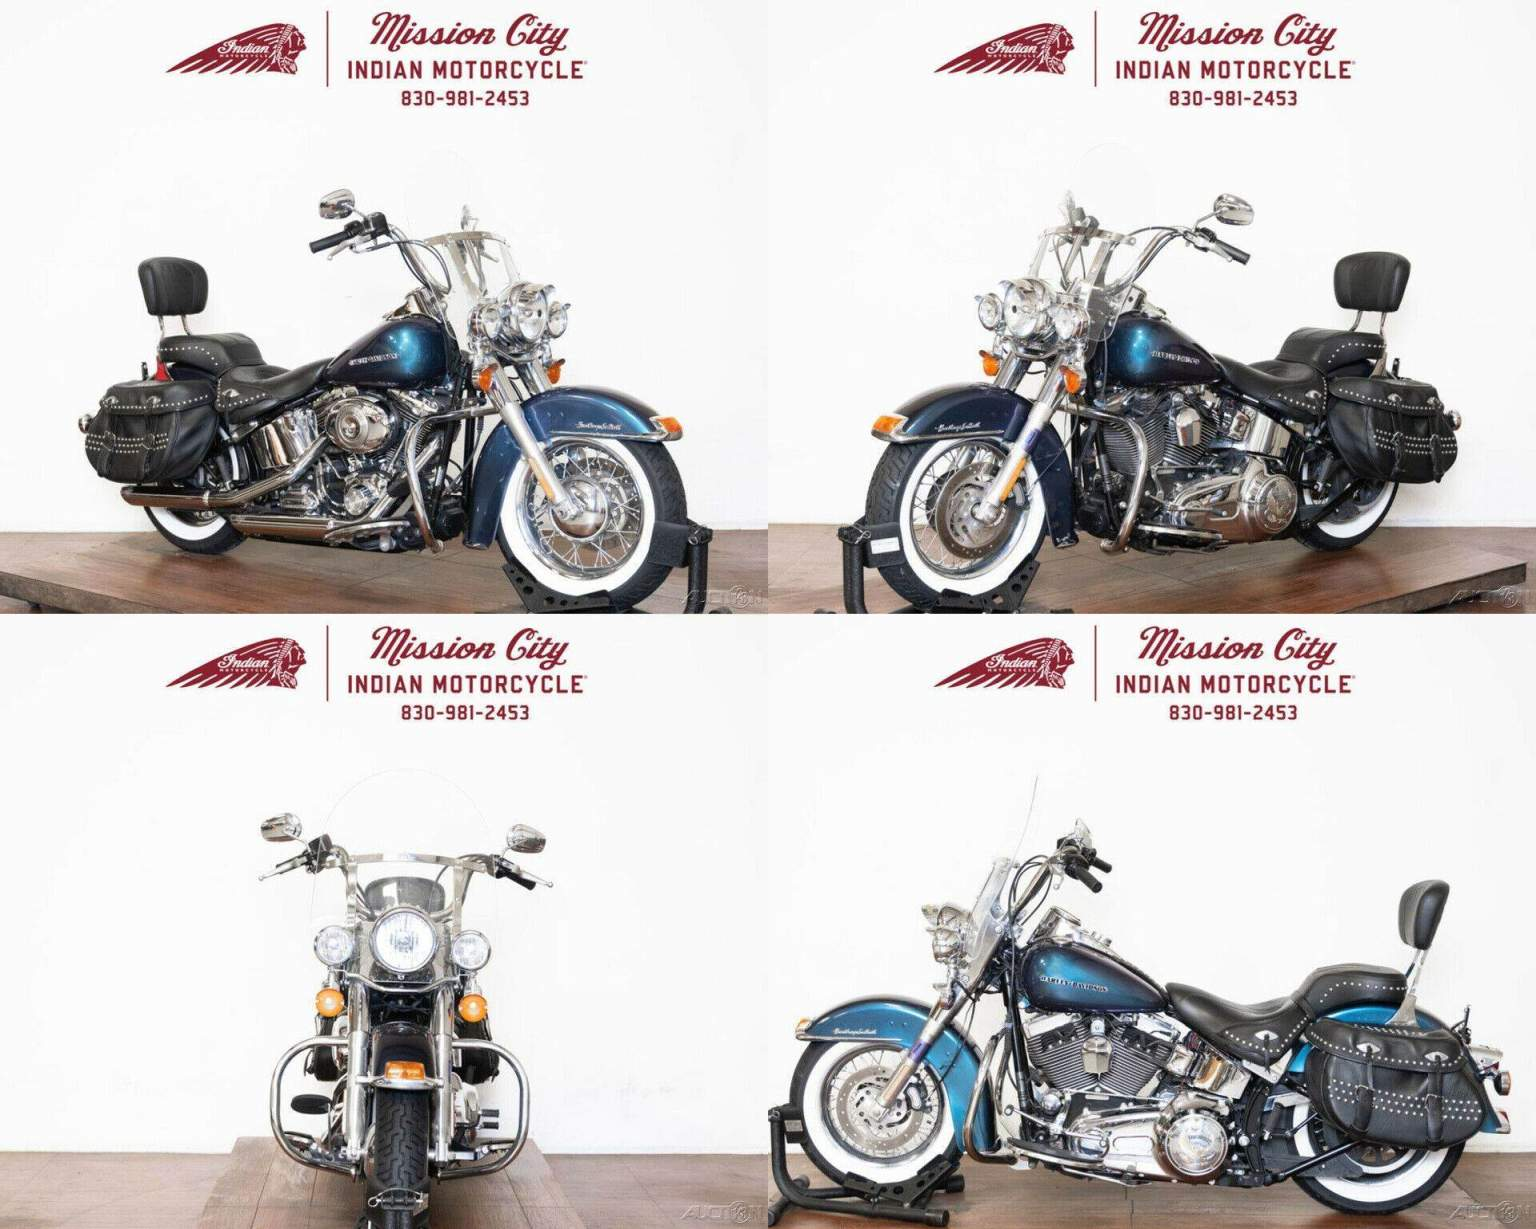 2010 Harley Davidson Softail  for sale craigslist